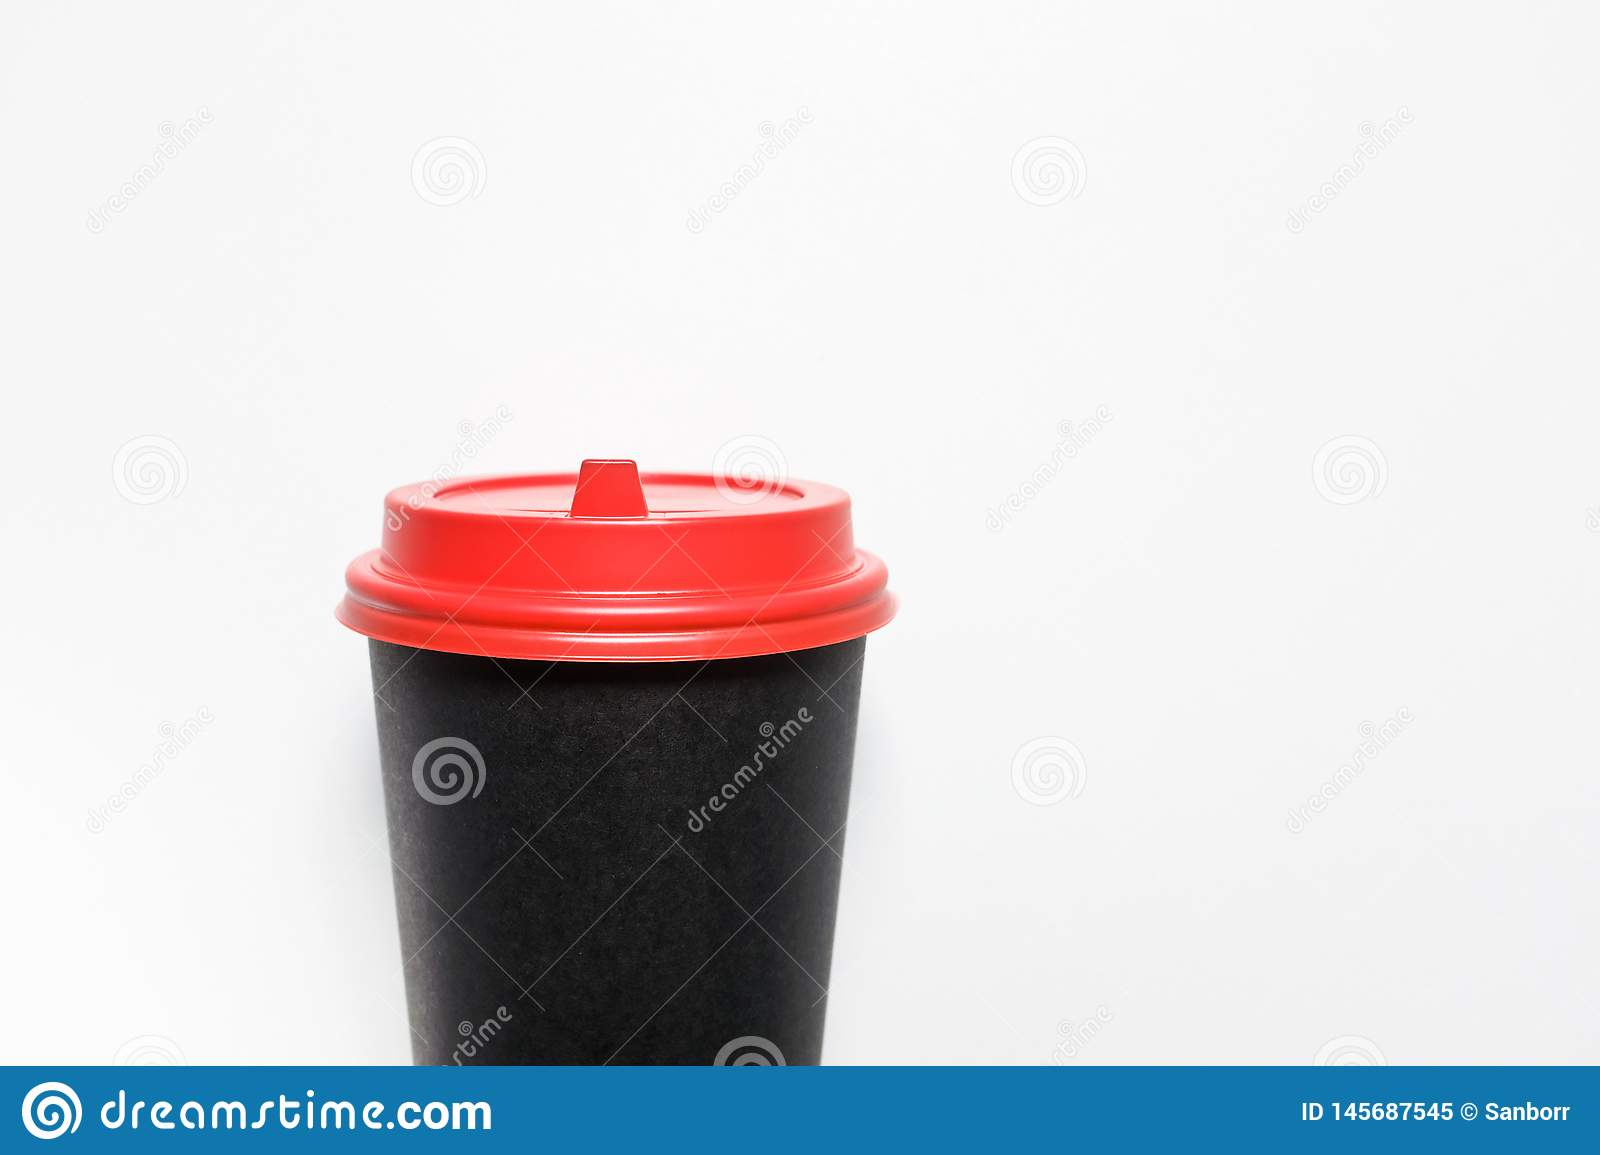 Disposable, paper Cup for coffee takeaway, with red plastic lid, isolated on white background, close-up